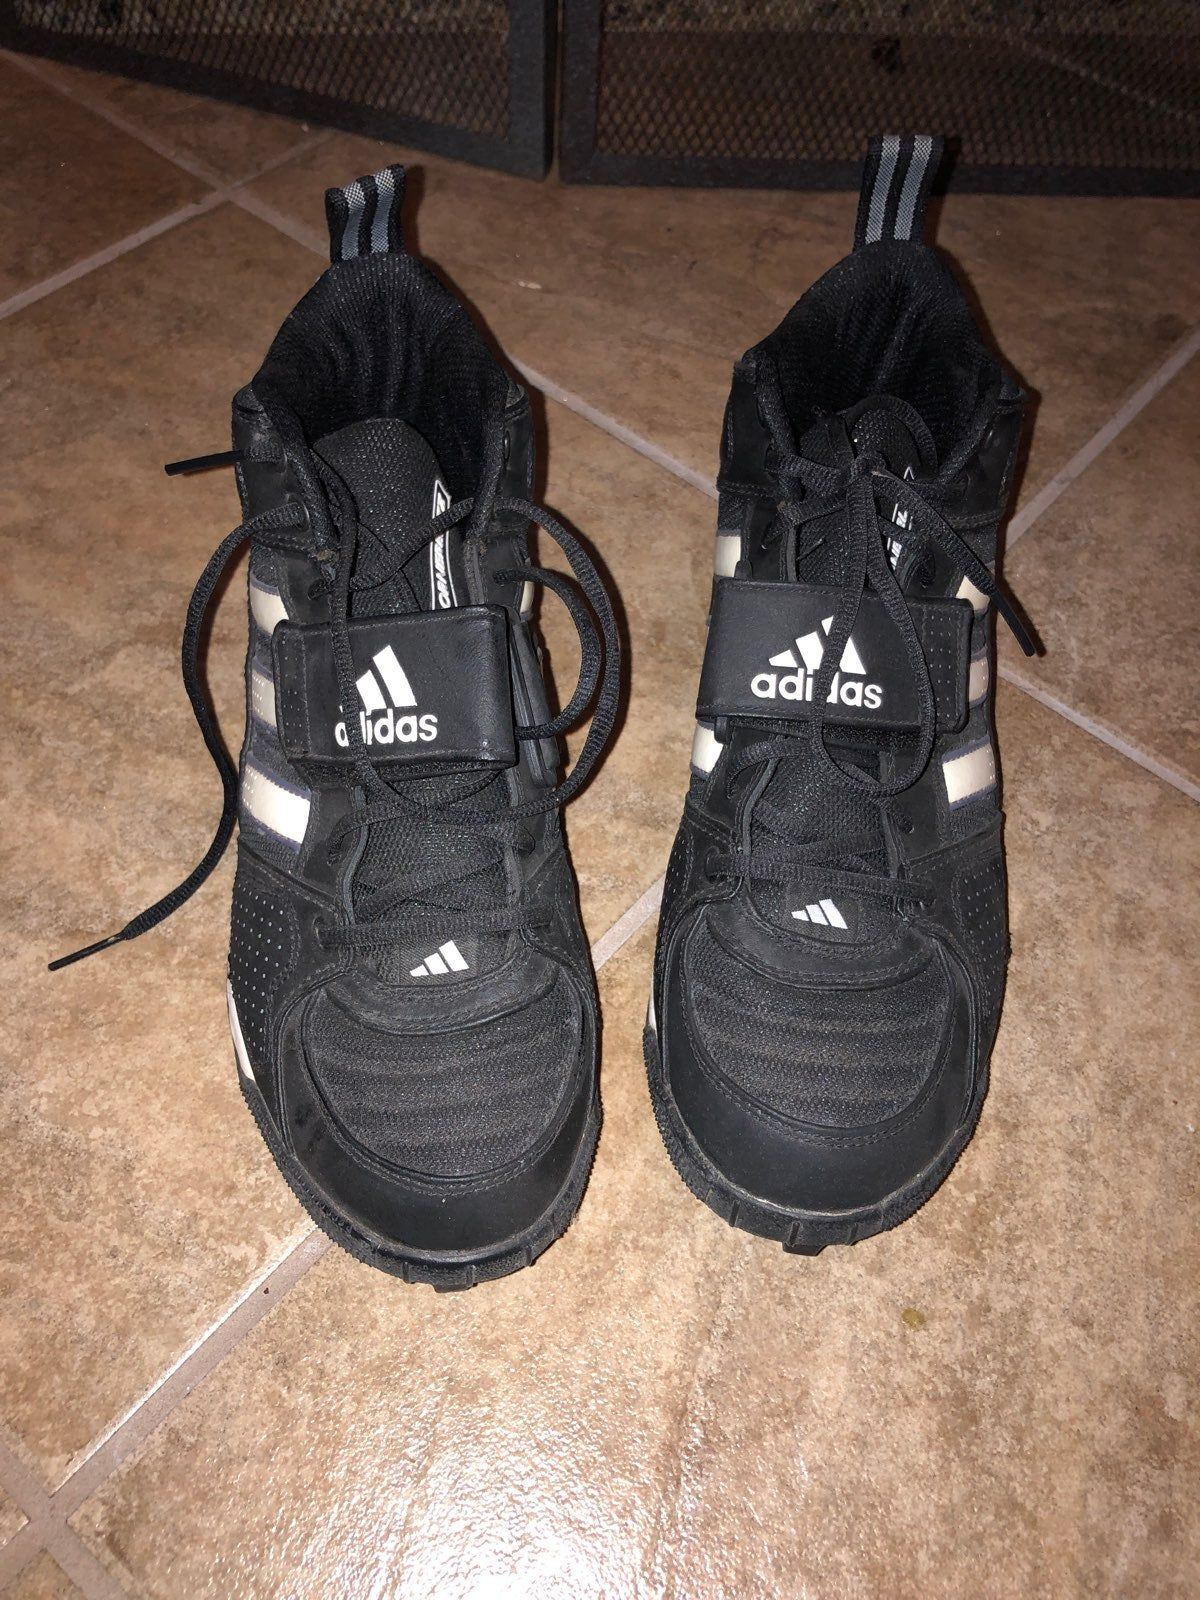 Mens high top cleats great condition size 11 adidas